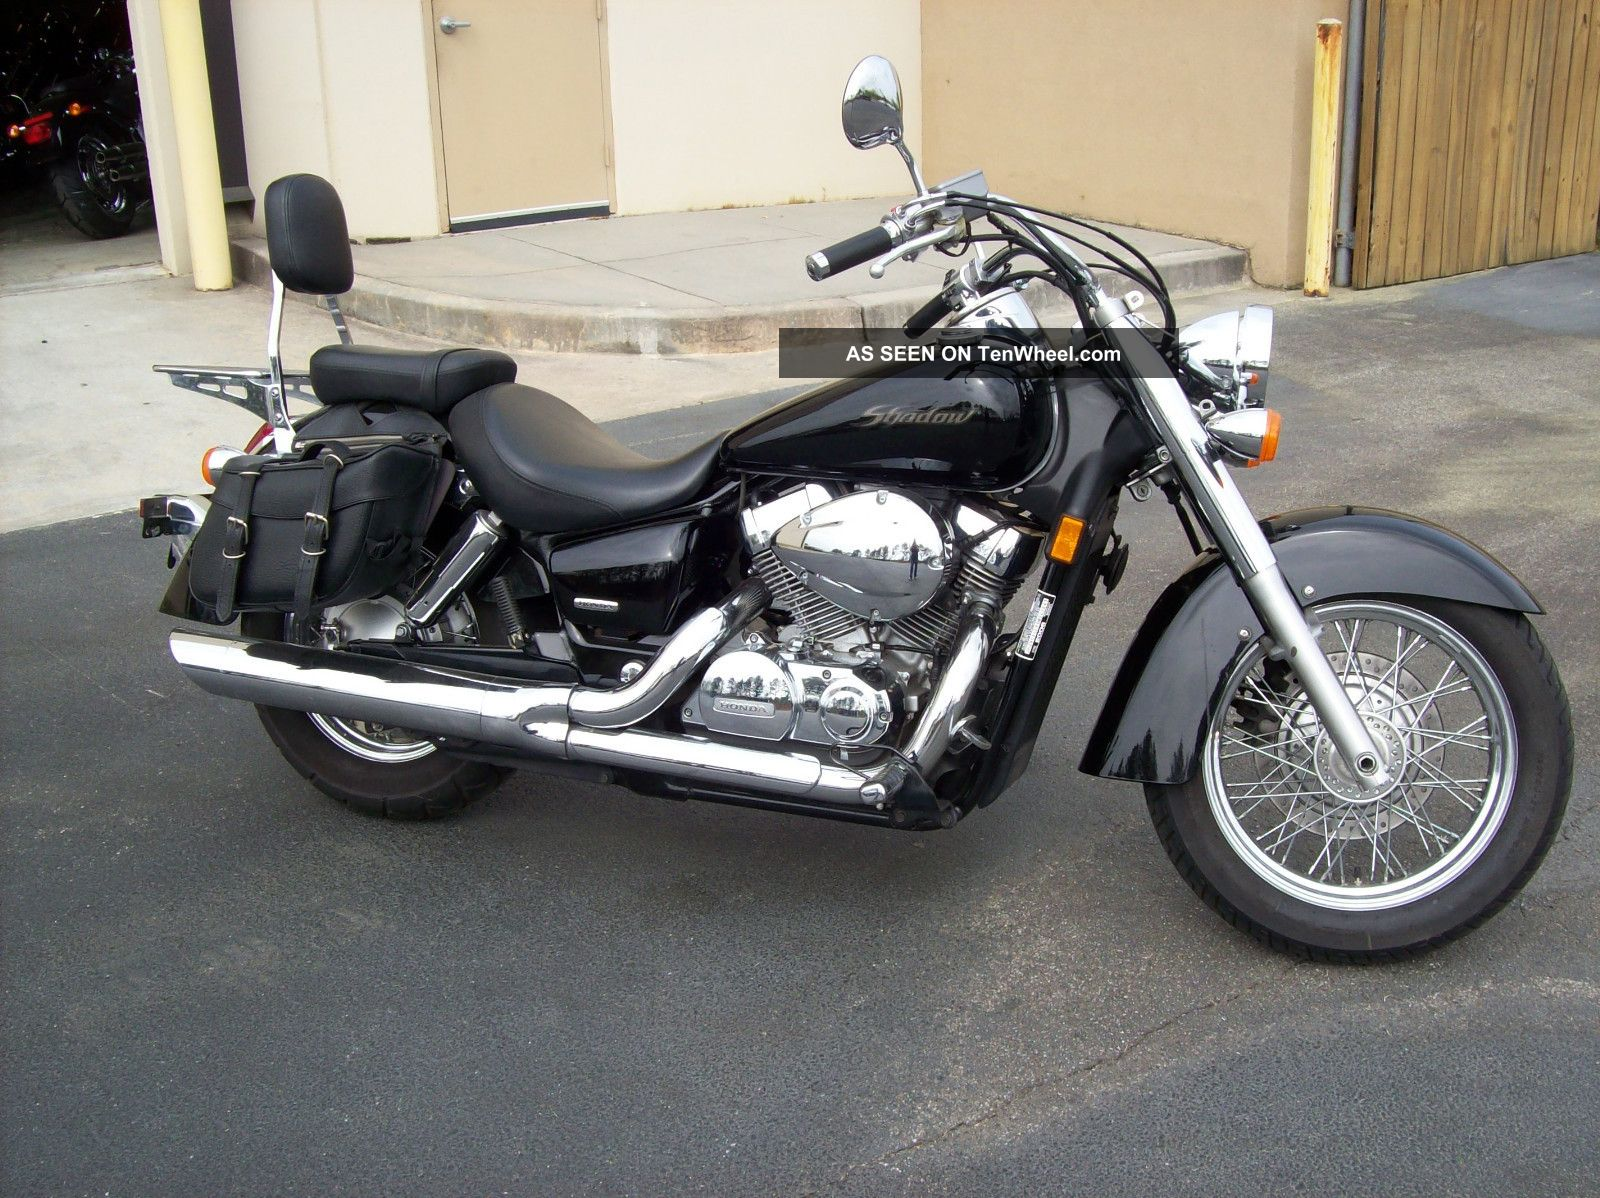 2006 honda shadow 125 image 9. Black Bedroom Furniture Sets. Home Design Ideas